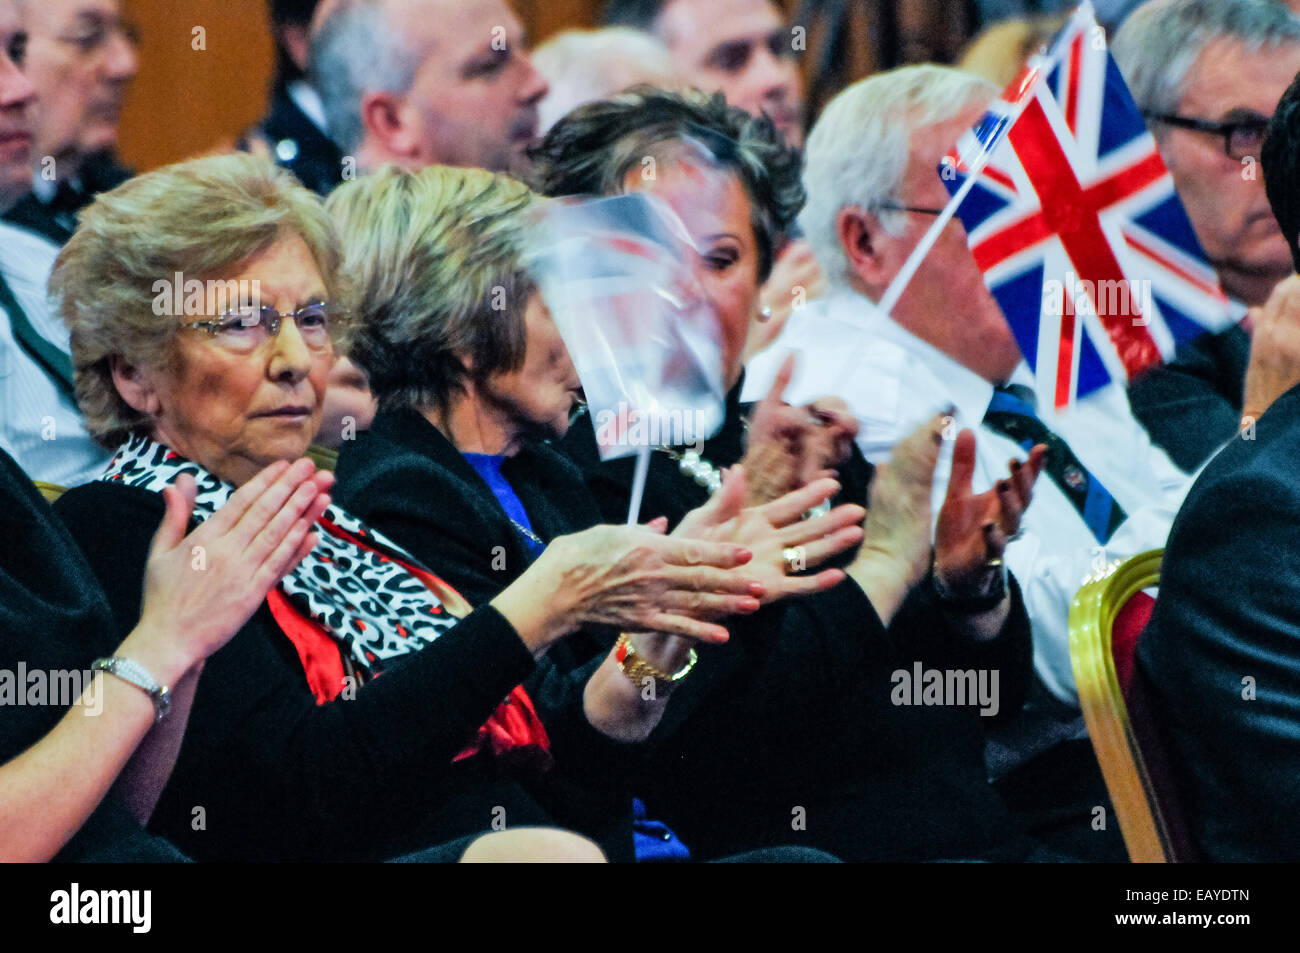 Belfast, Northern Ireland. 22 Nov 2014 - Audience members, made up primarily of party members and indicative of - Stock Image